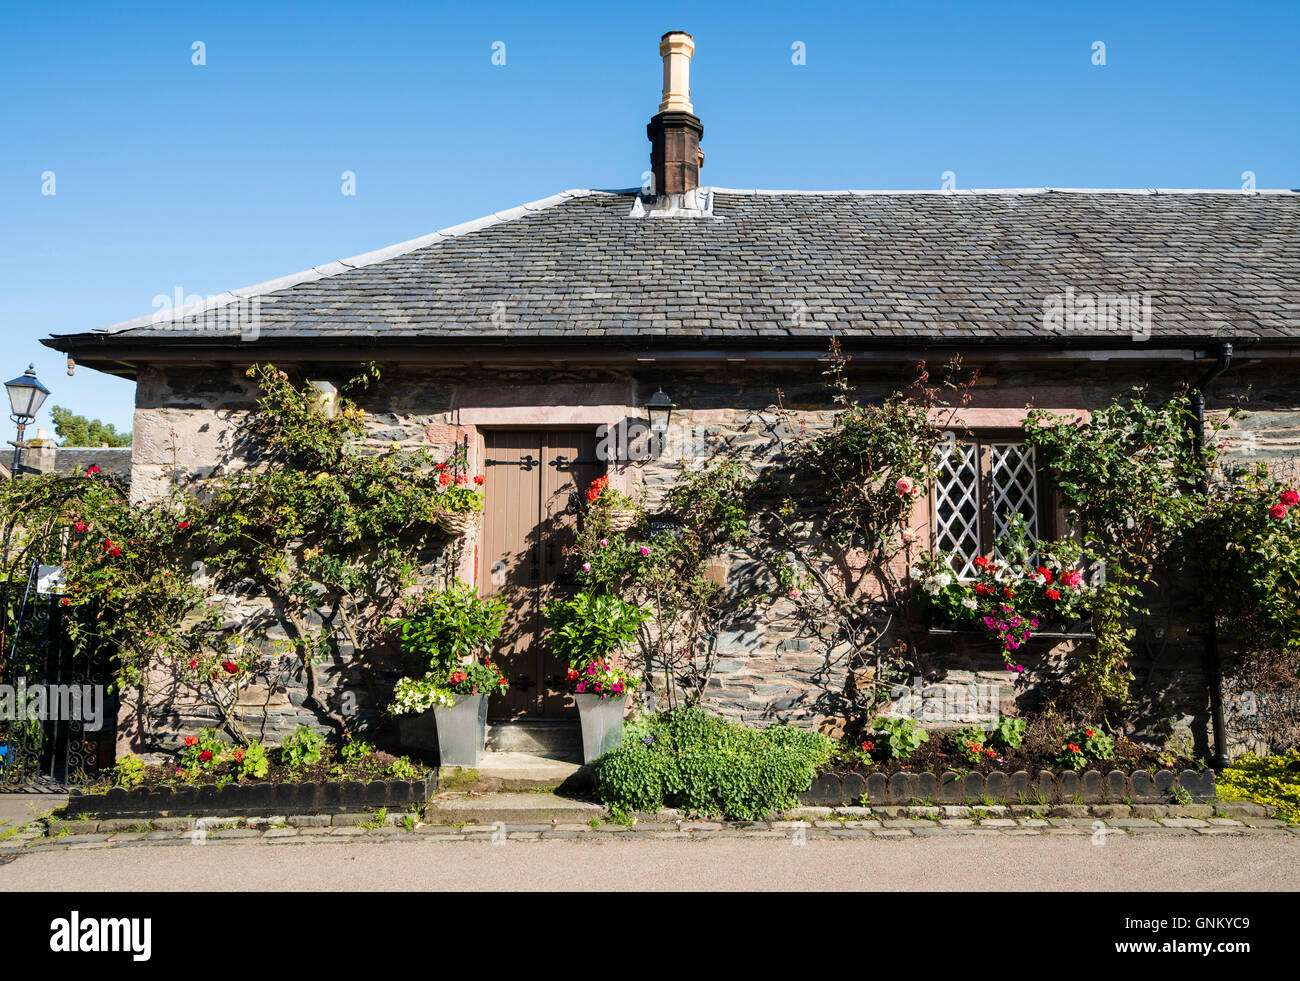 Traditional old cottages in historic village of Luss on banks of Loch Loomnd, in Argyll and Bute, Scotland, United - Stock Image